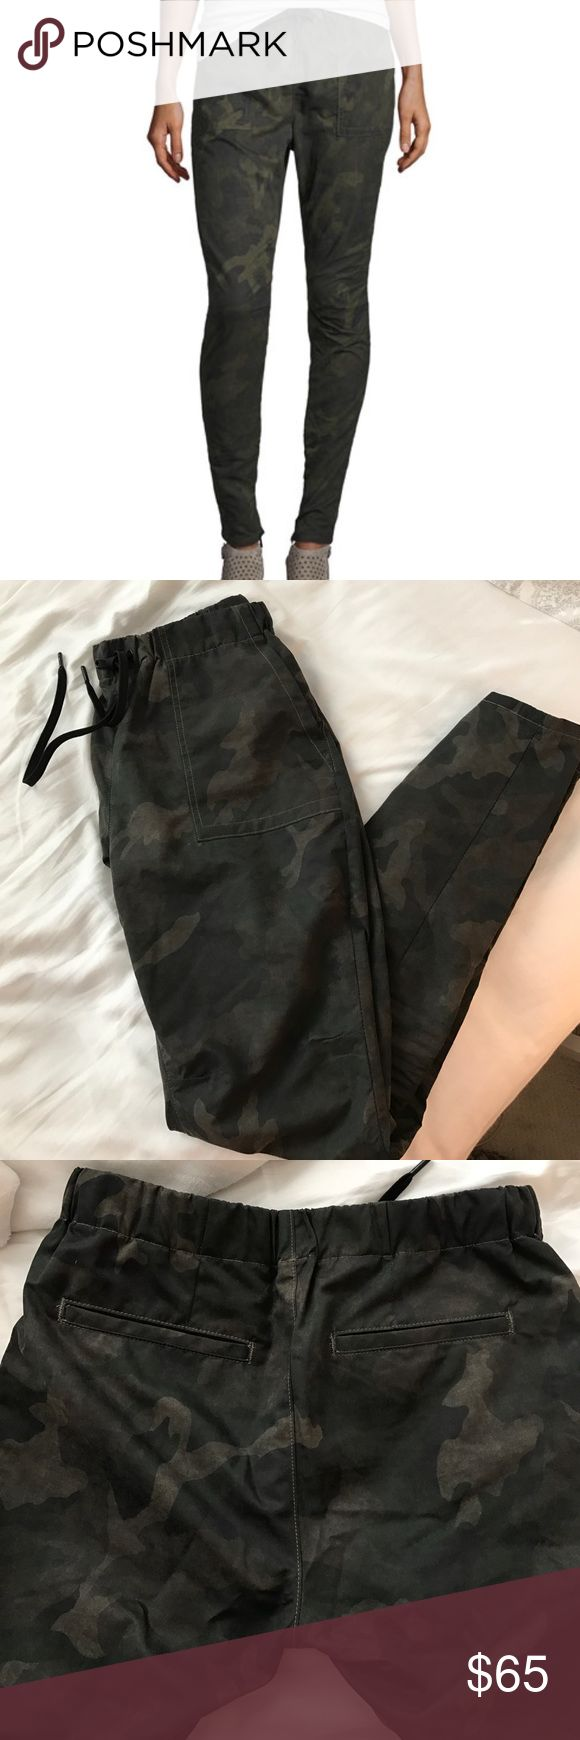 Rag & Bone Camo Jogger Pants Super comfy yet chic pants for everyday! With a drawstring and stretchy waistband these have a great fit and can instantly make any outfit look trendy. rag & bone Pants Track Pants & Joggers